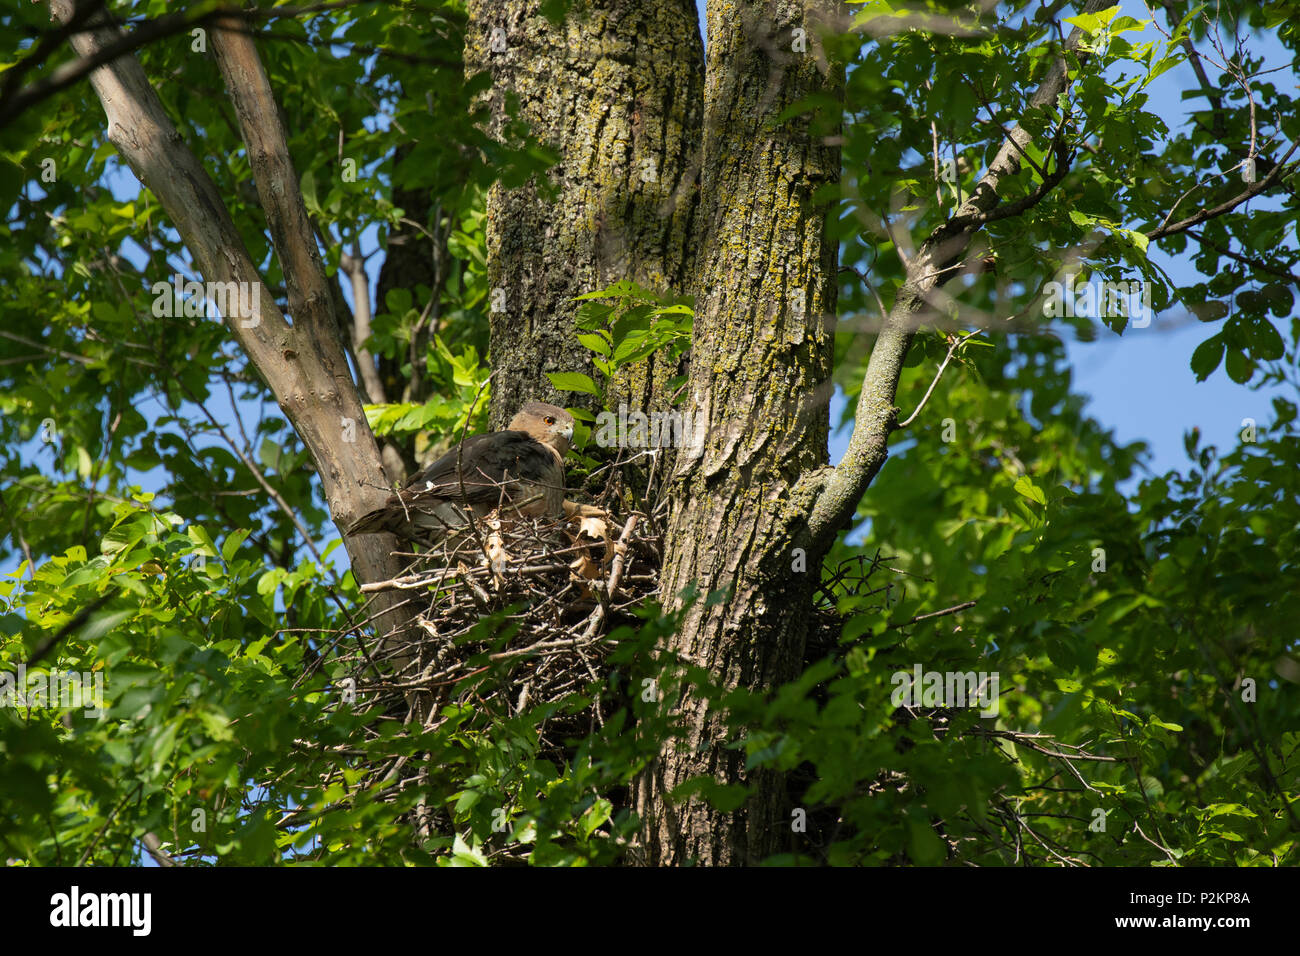 A female cooper's hawk at active nest in a park in Toronto, Ontario, Canada. - Stock Image